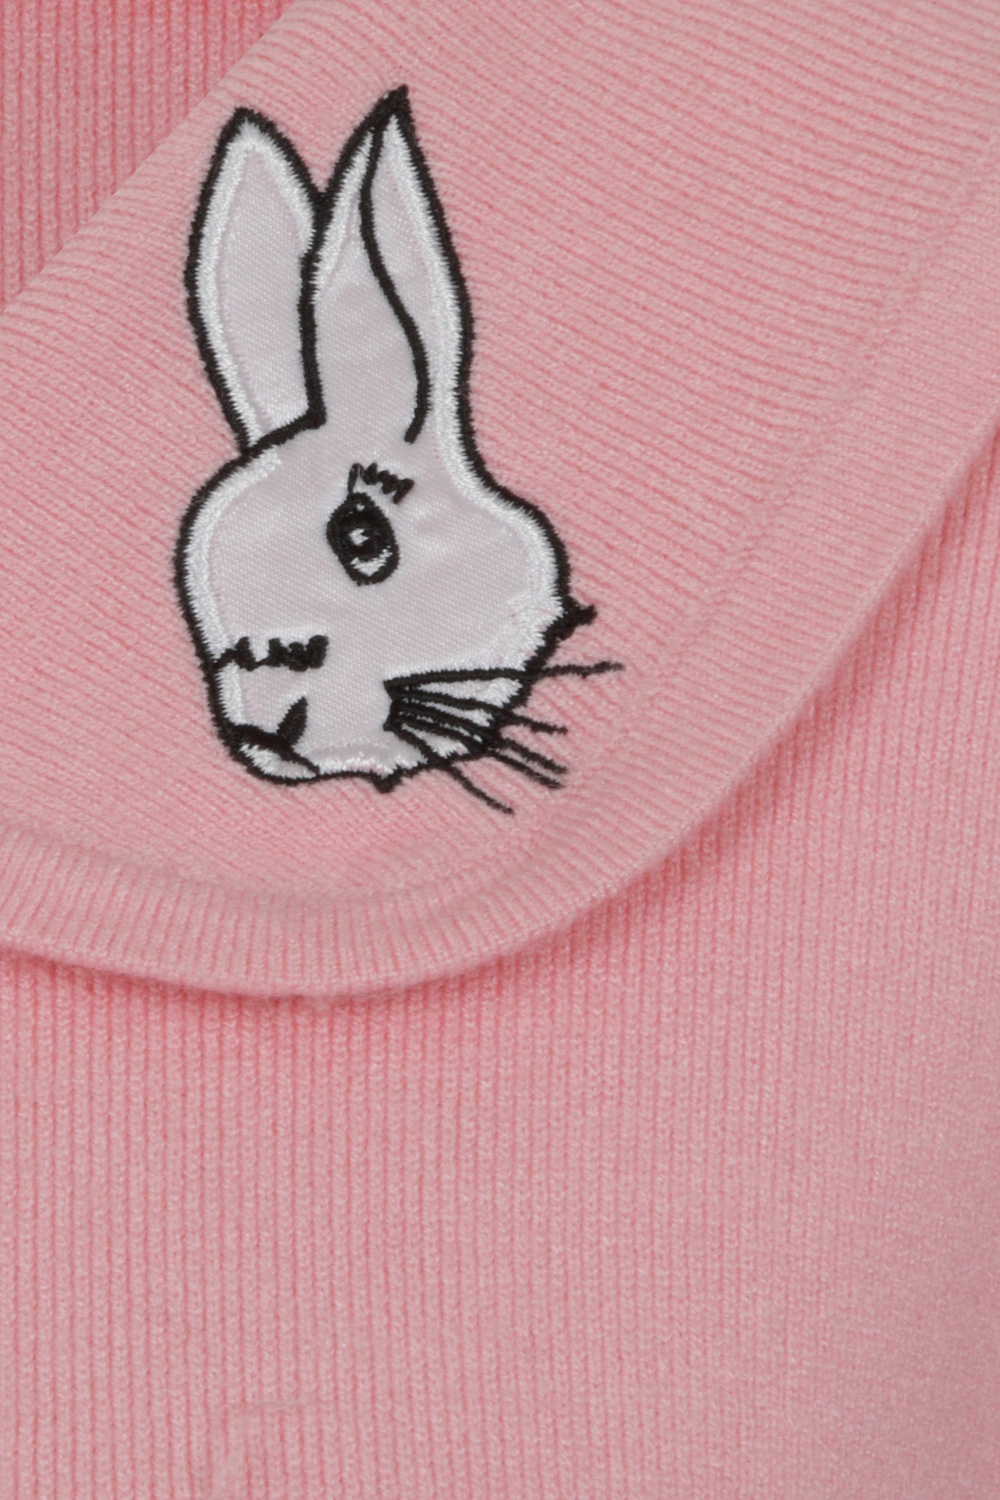 Banned Bunny Hop Knit Cardigan In Blush Pink